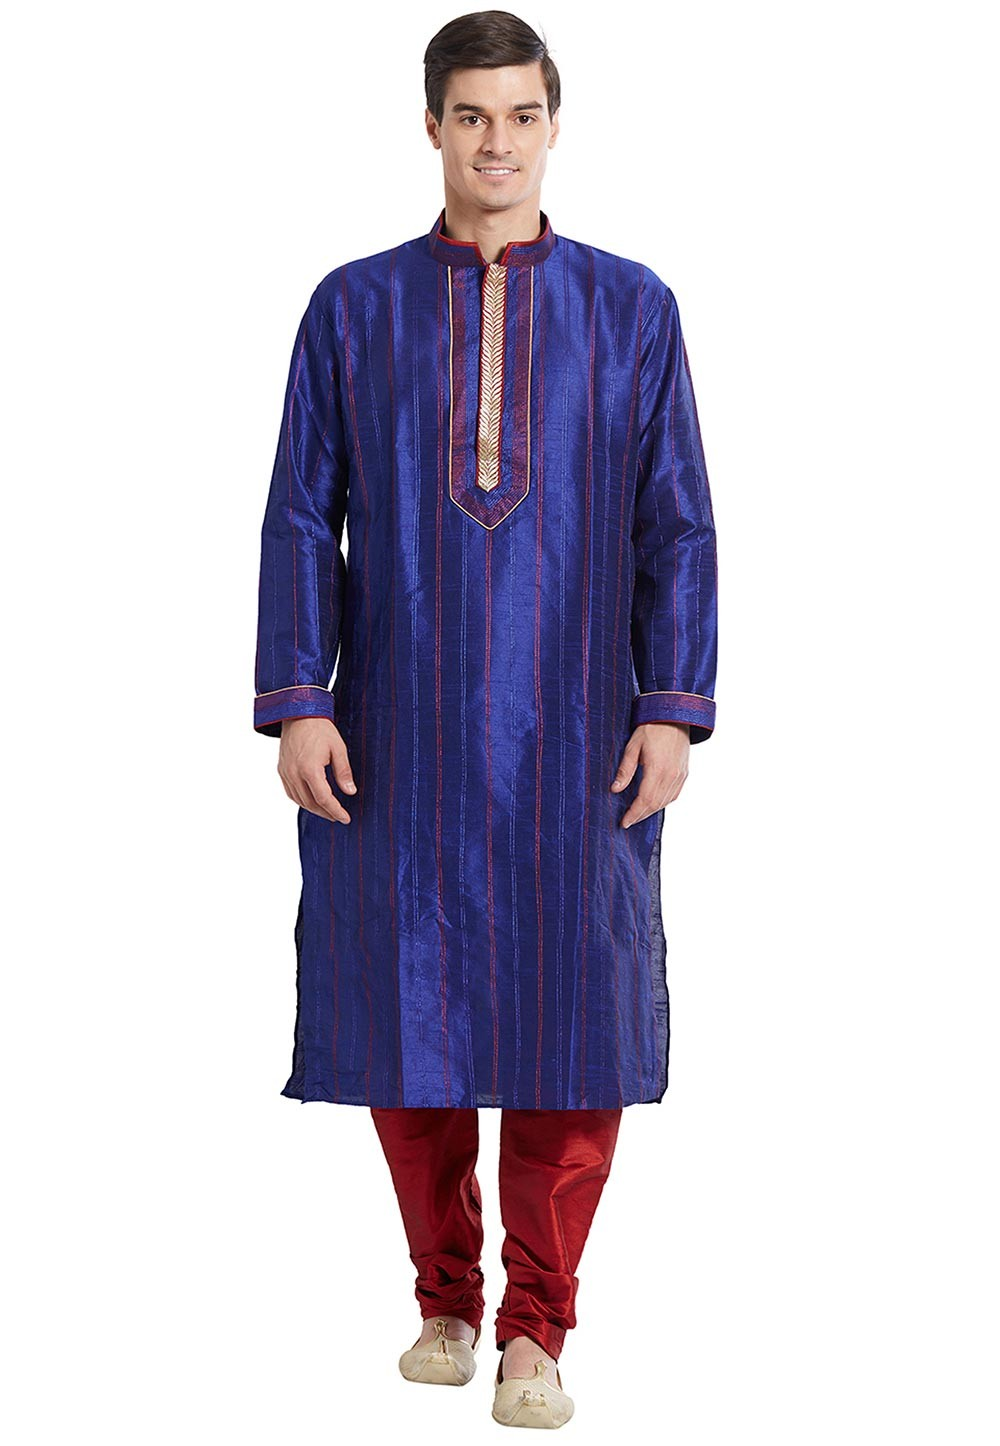 Men's Exquisite Blue Color Silk Readymade Kurta Pyjama With Thread Work